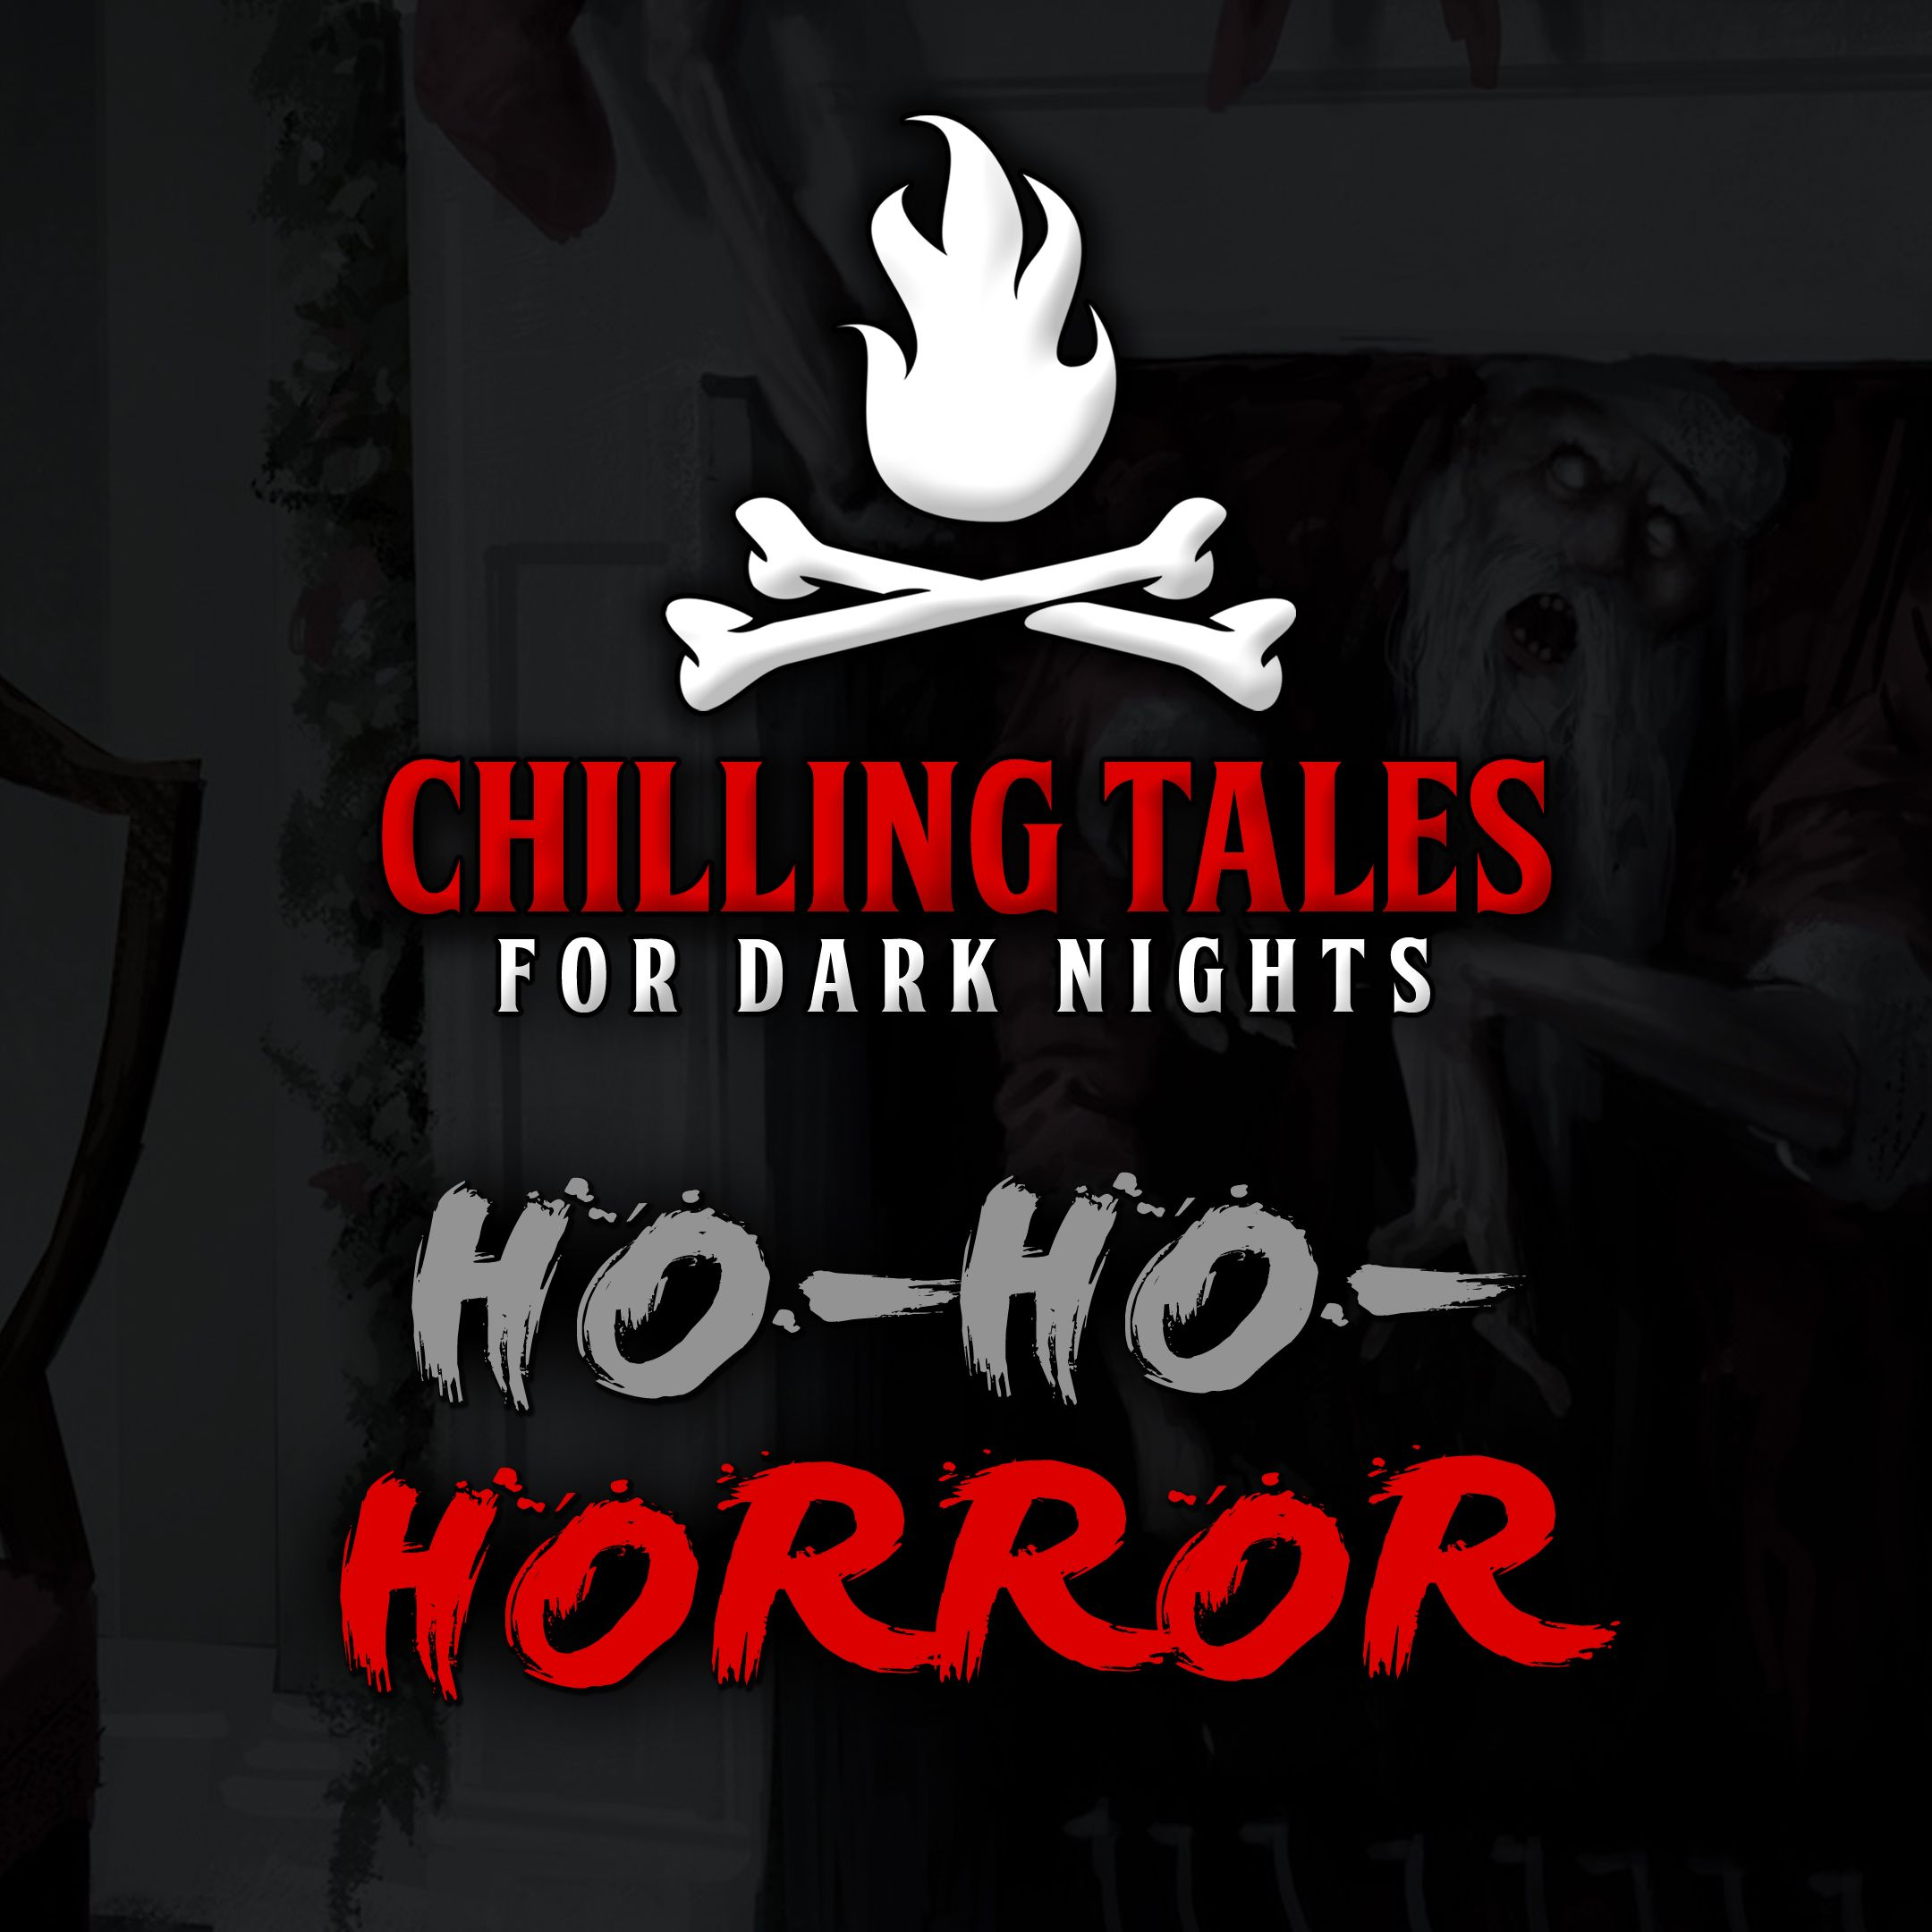 66: Ho-Ho-Horror – Chilling Tales for Dark Nights